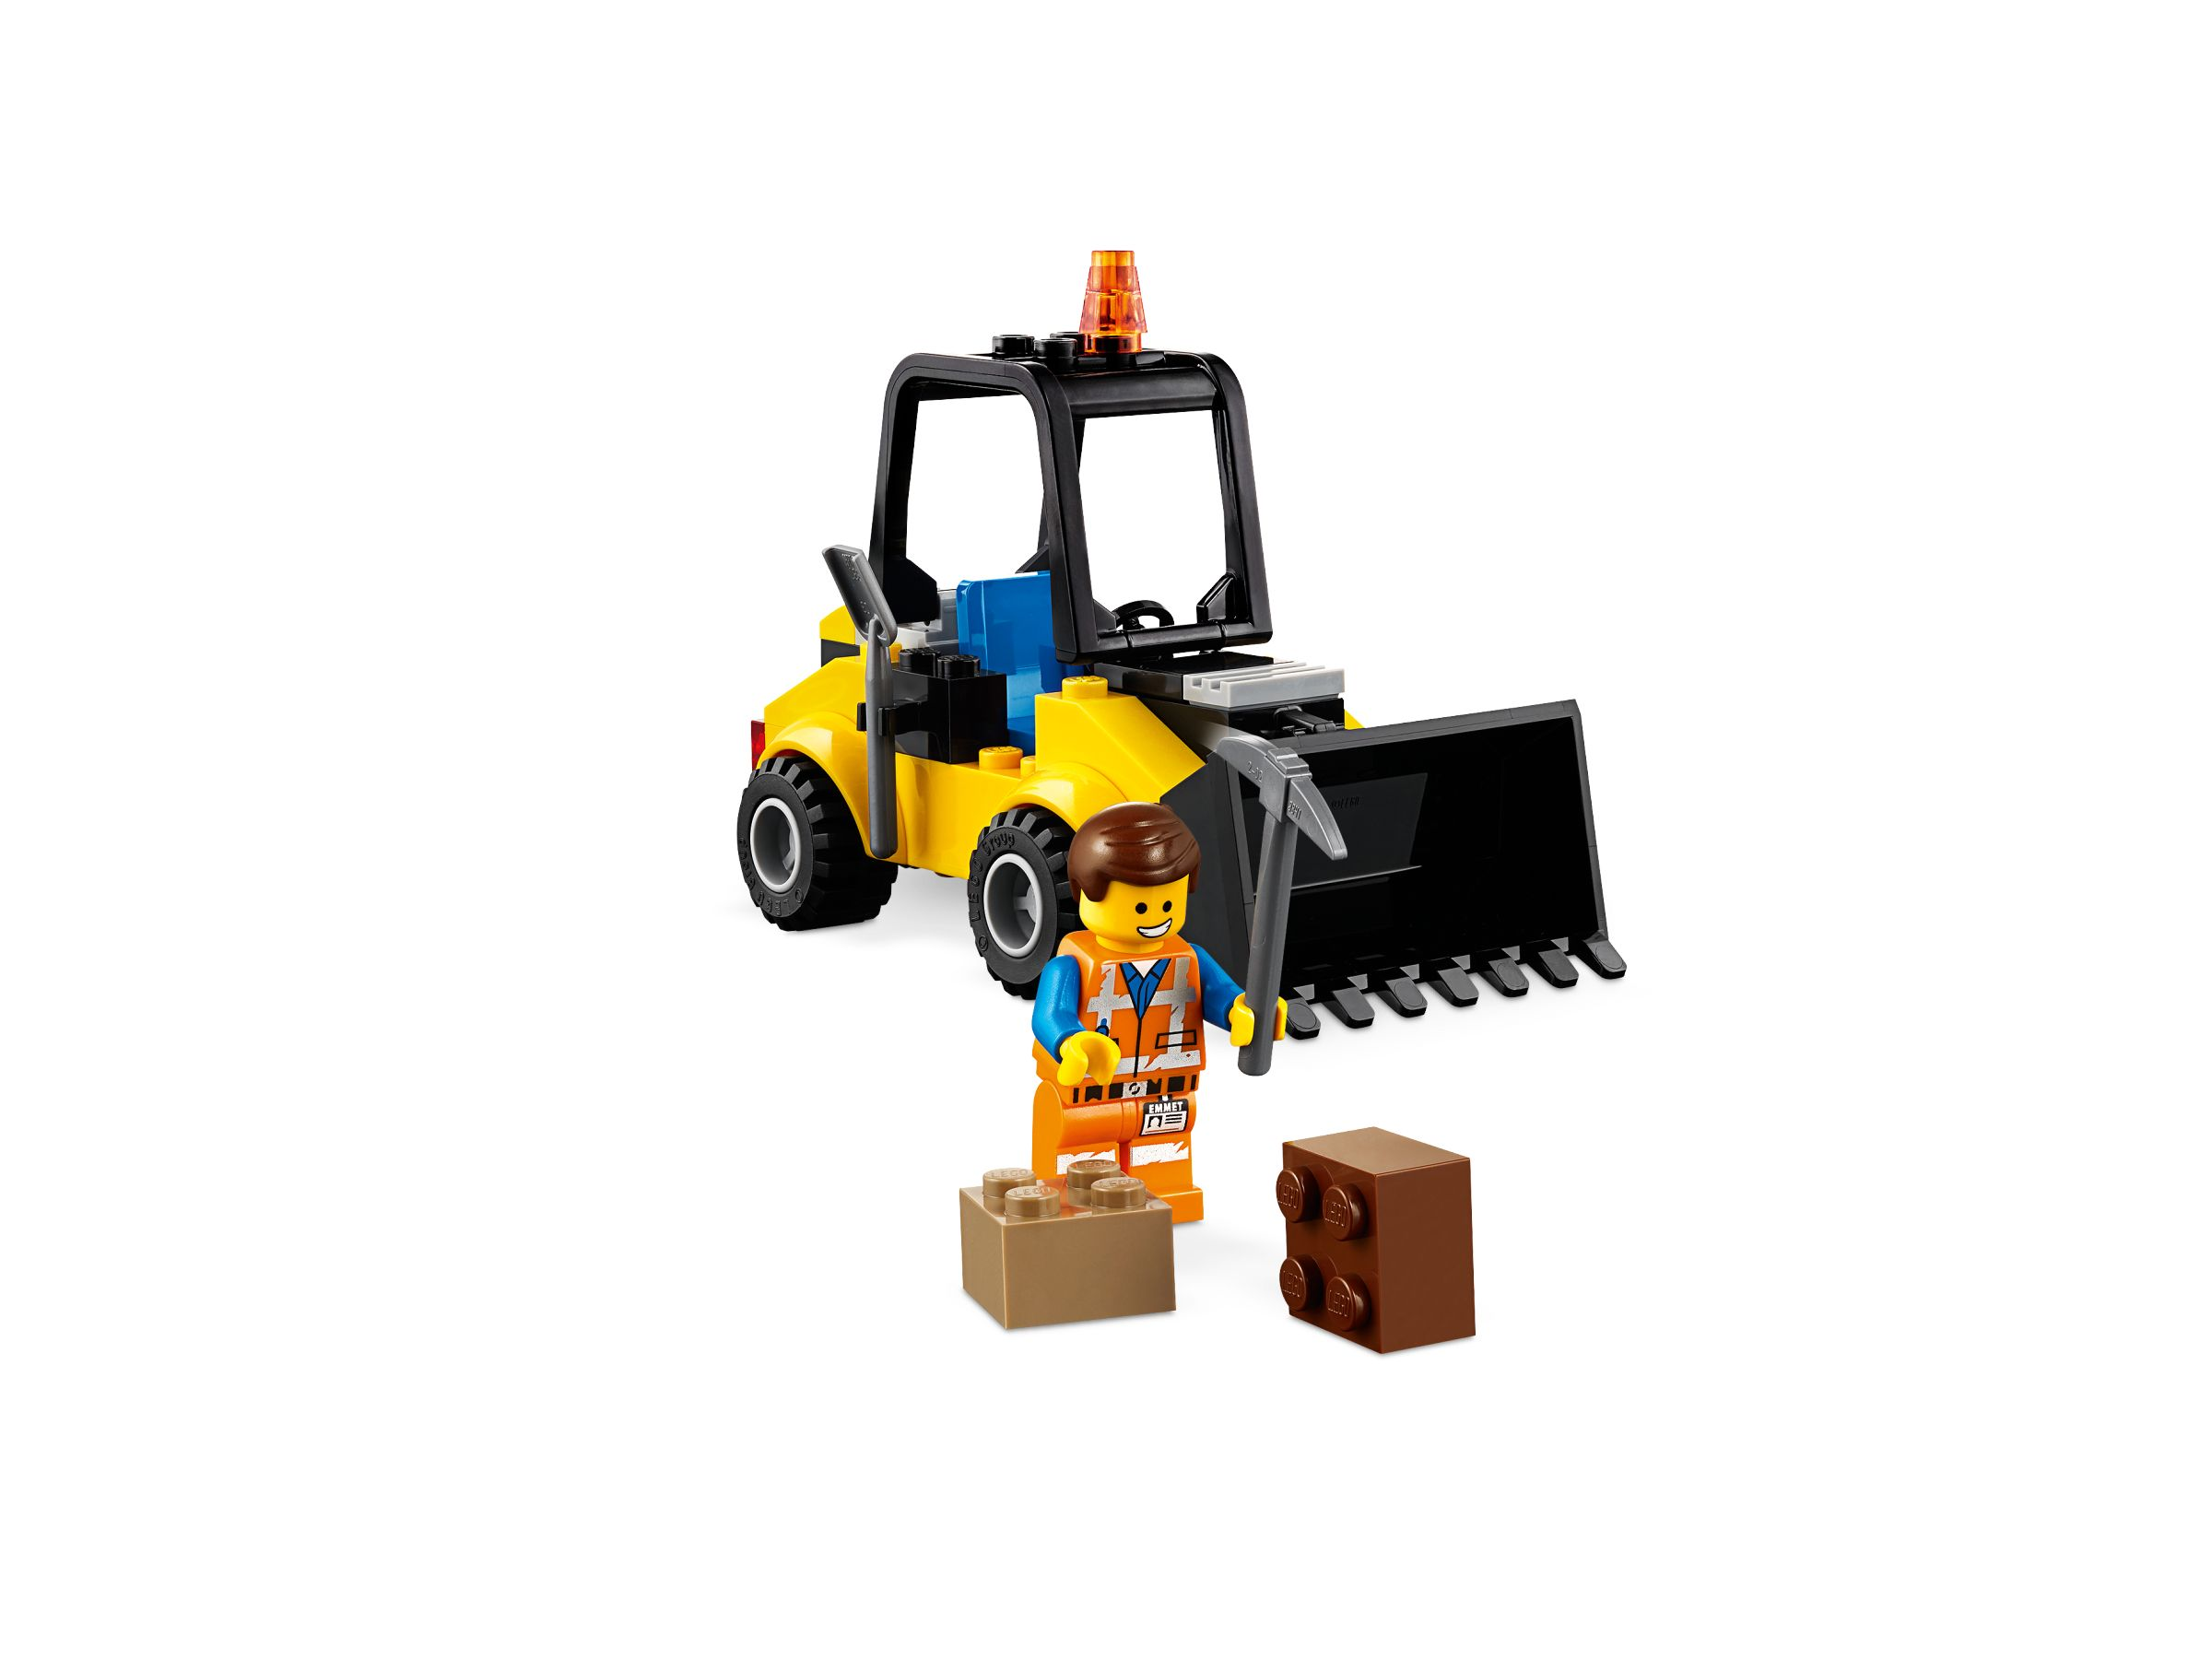 LEGO The LEGO Movie 2 70832 Emmets Baukoffer! LEGO_70832_alt4.jpg